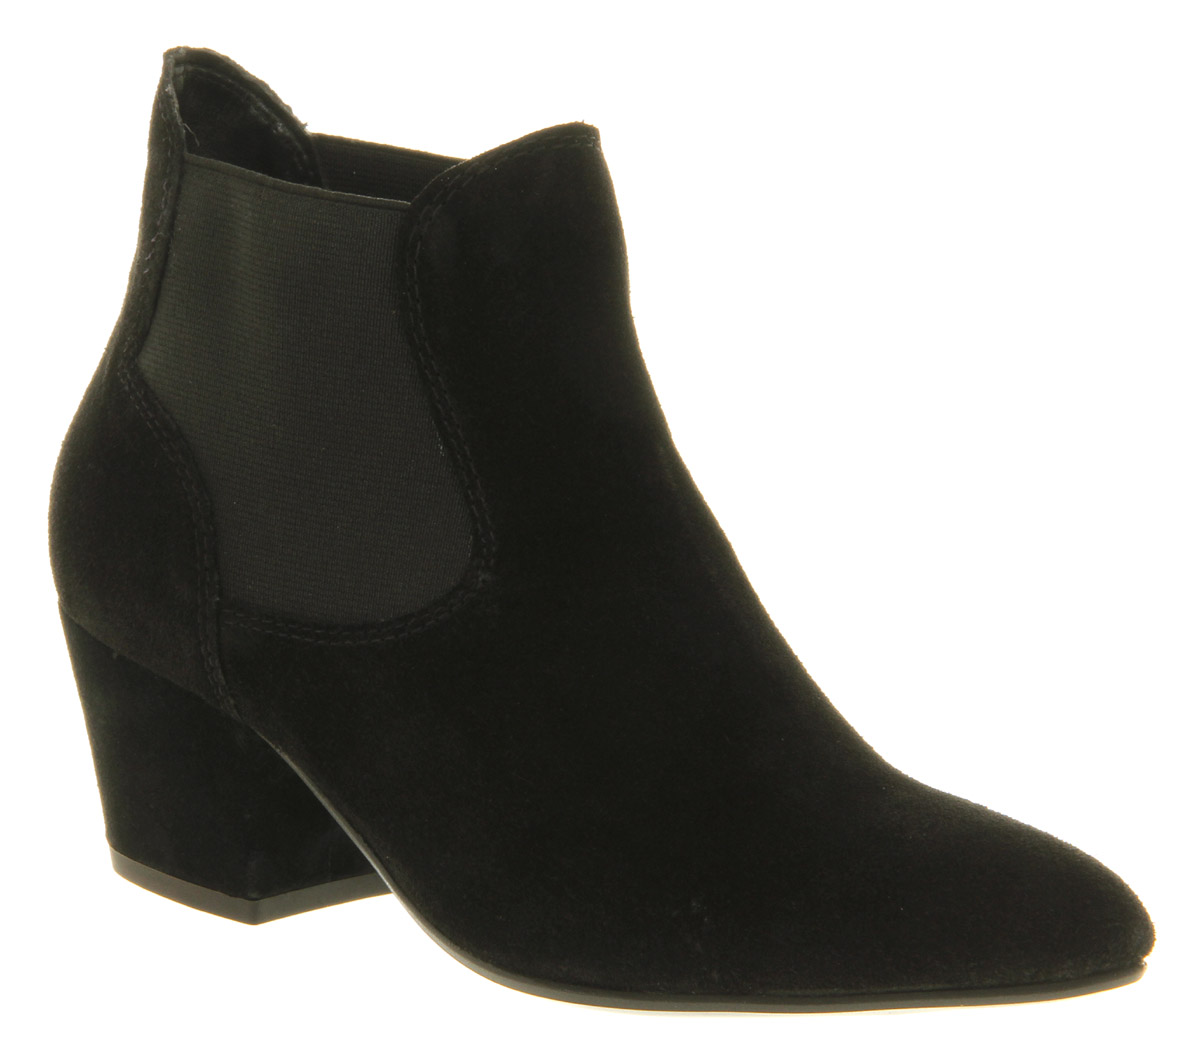 Elegant Ladies Chelsea Boots Womens Suede Look Block Heel Shoes Ankle Zip Pom Pom Winter | EBay